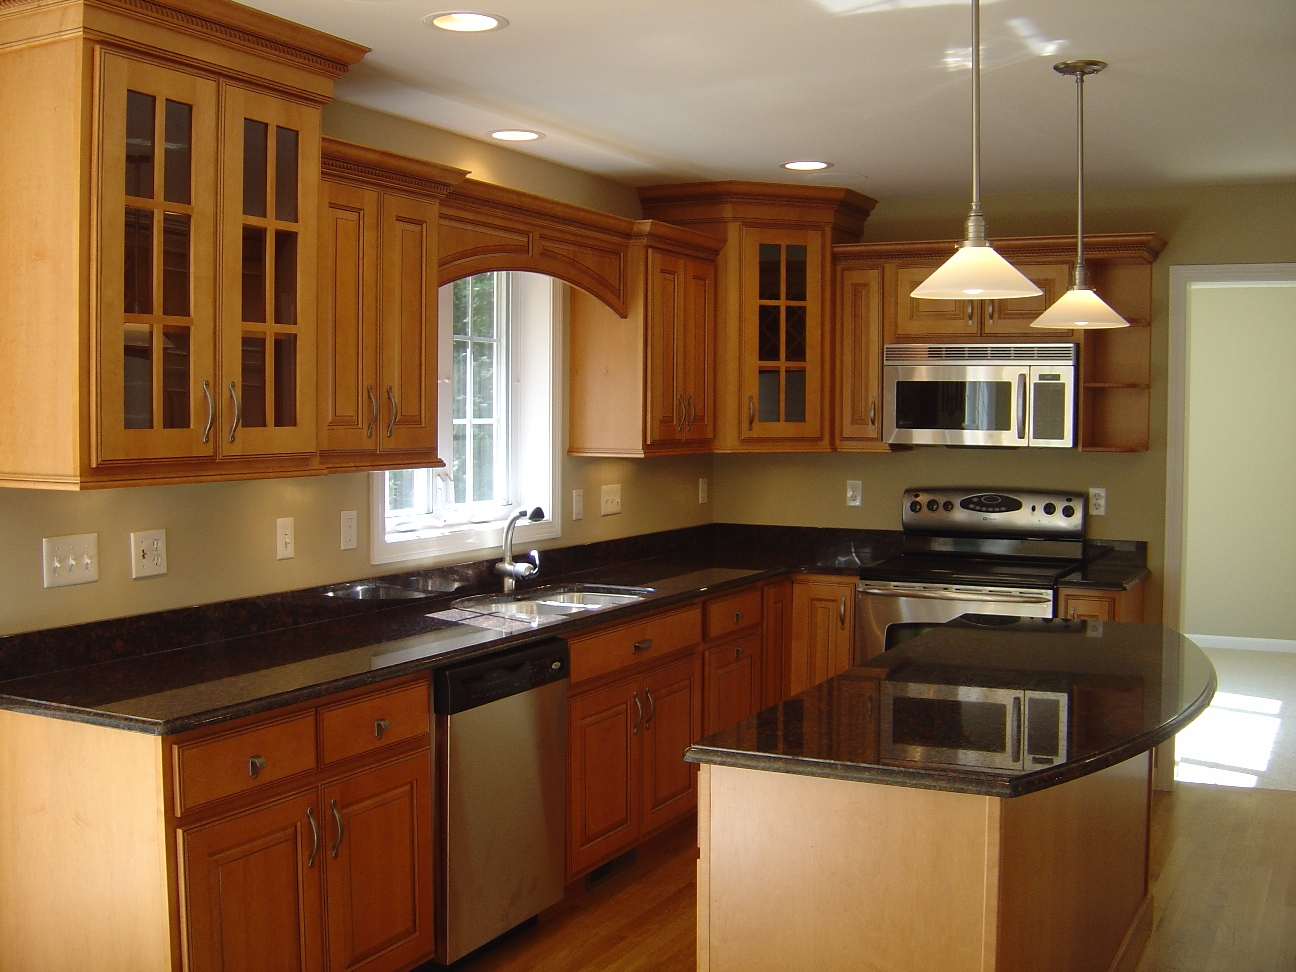 kitchen design images ideas kitchen designs photos find kitchen designs kfoods 93927